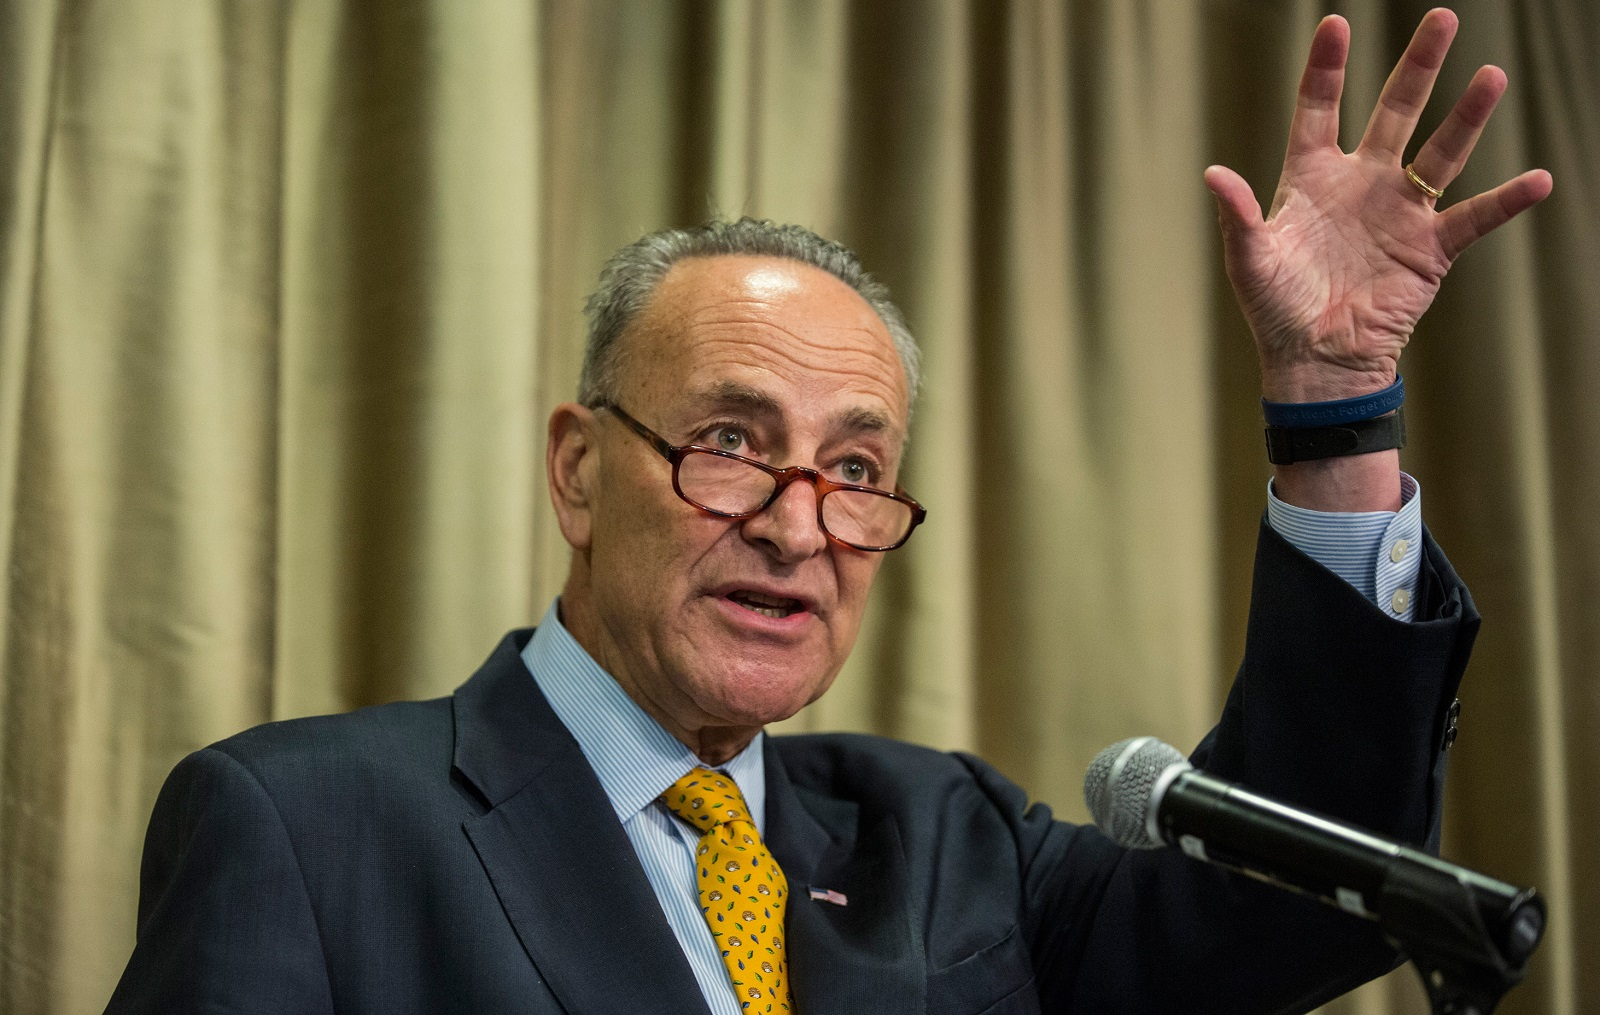 Sen. Chuck Schumer plans to oppose many of President Trump's remaining cabinet choices. (Getty Images)